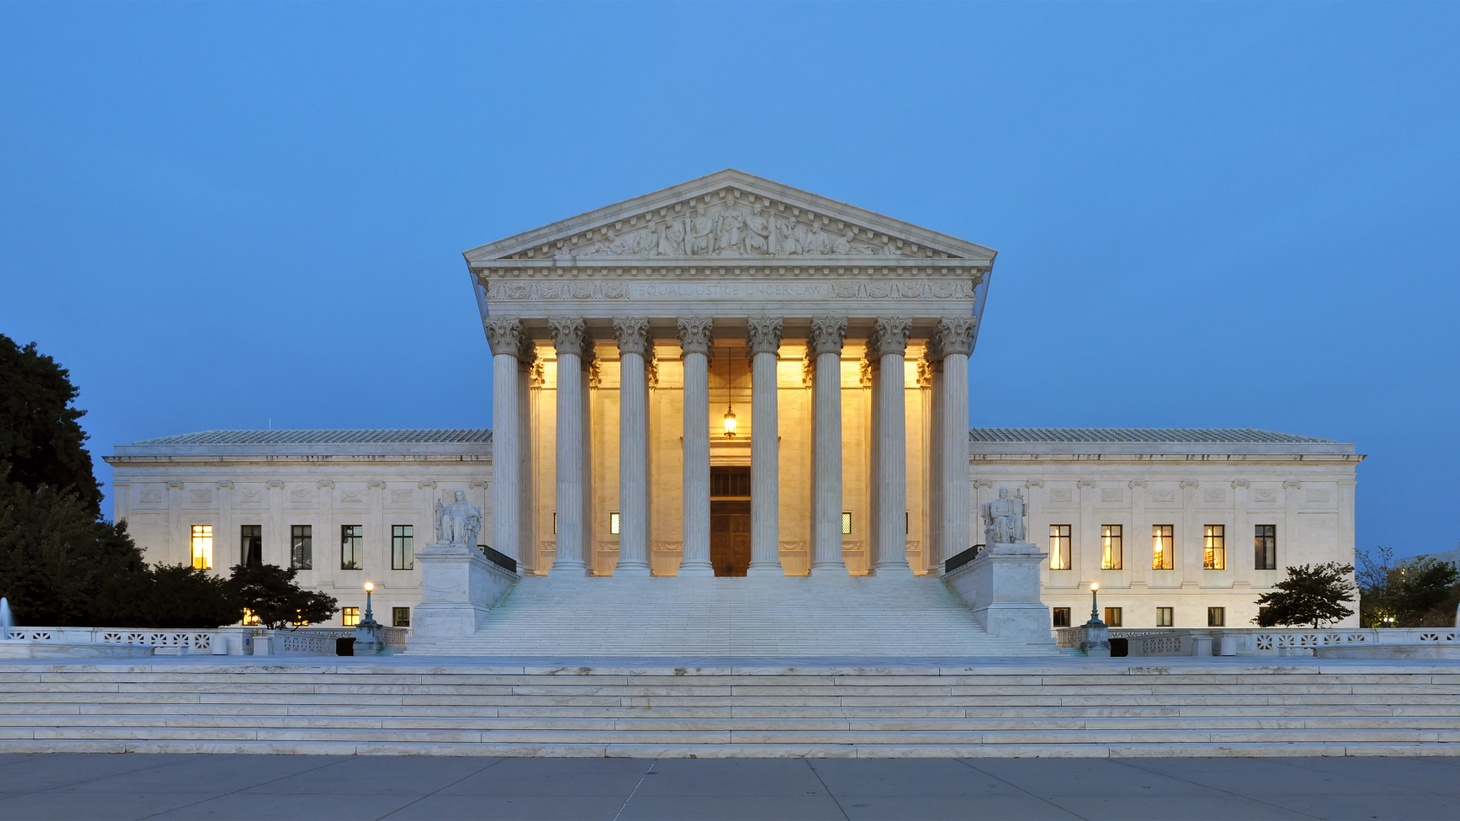 The U.S Supreme Court.